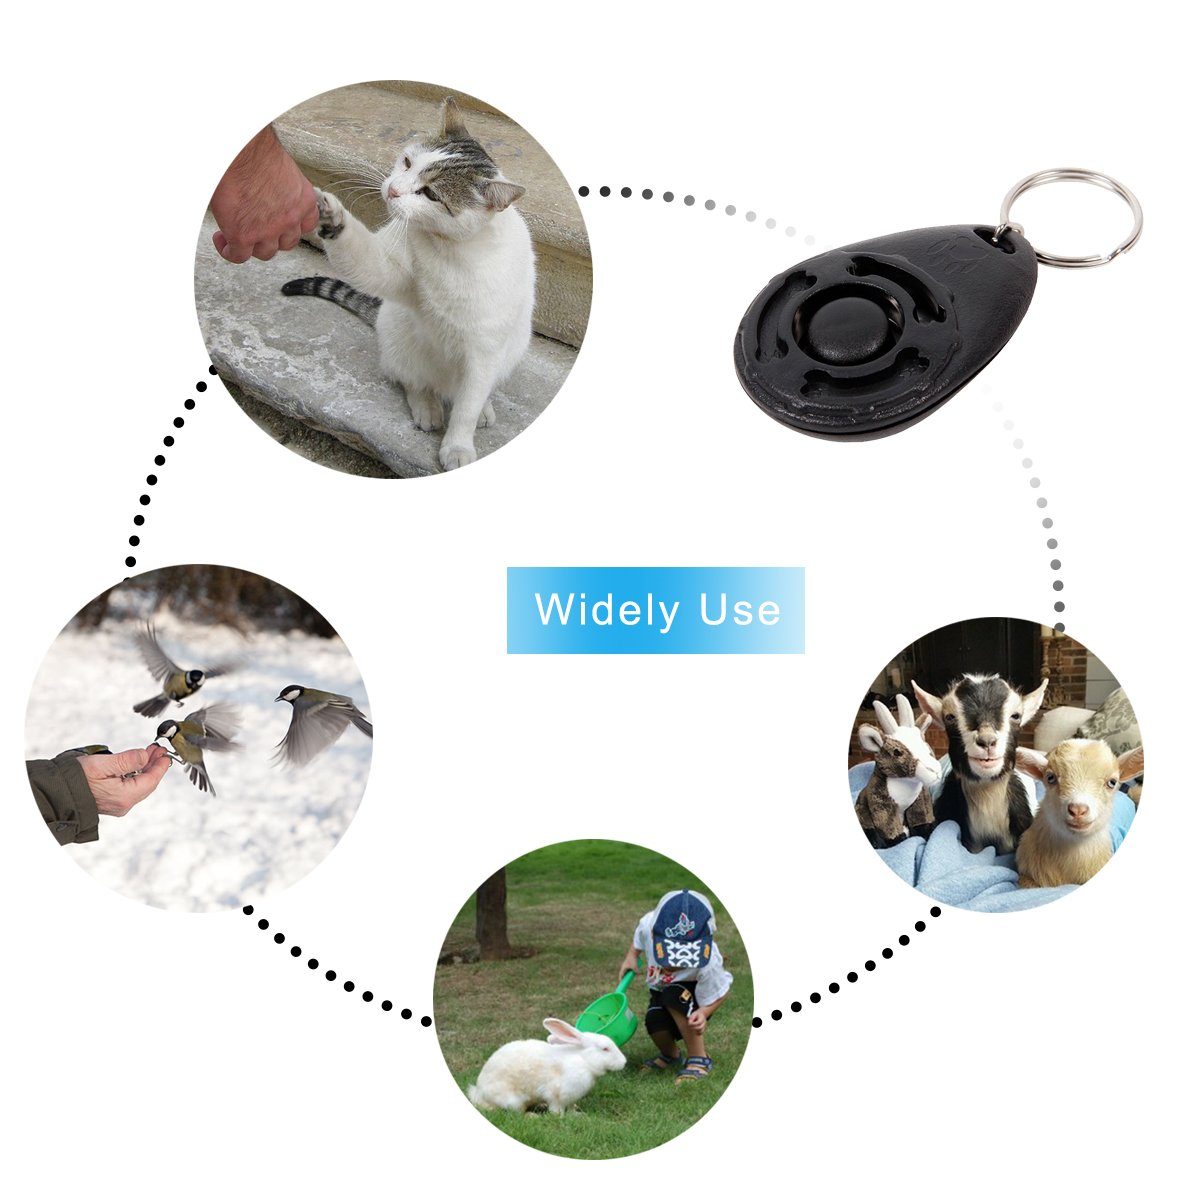 Diyife Training Clicker with Wrist Strap for Dog Cat Horse. 4 PCS, Multi-Color Dog Clicker,